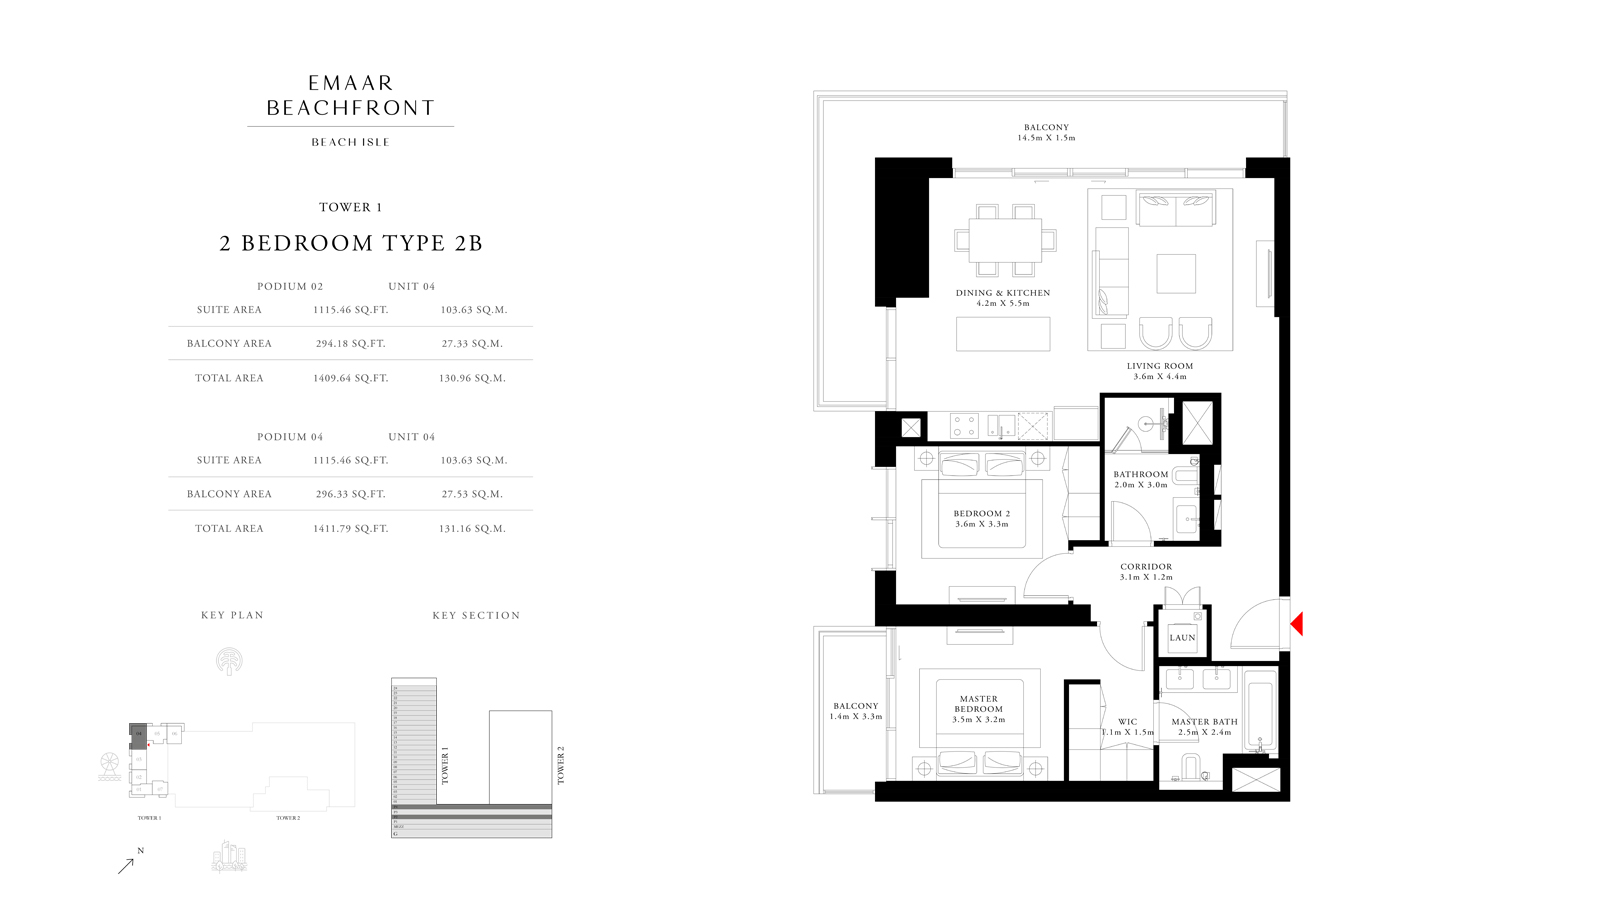 2 Bedroom Type 2B Tower 1, Size 1411    sq. ft.